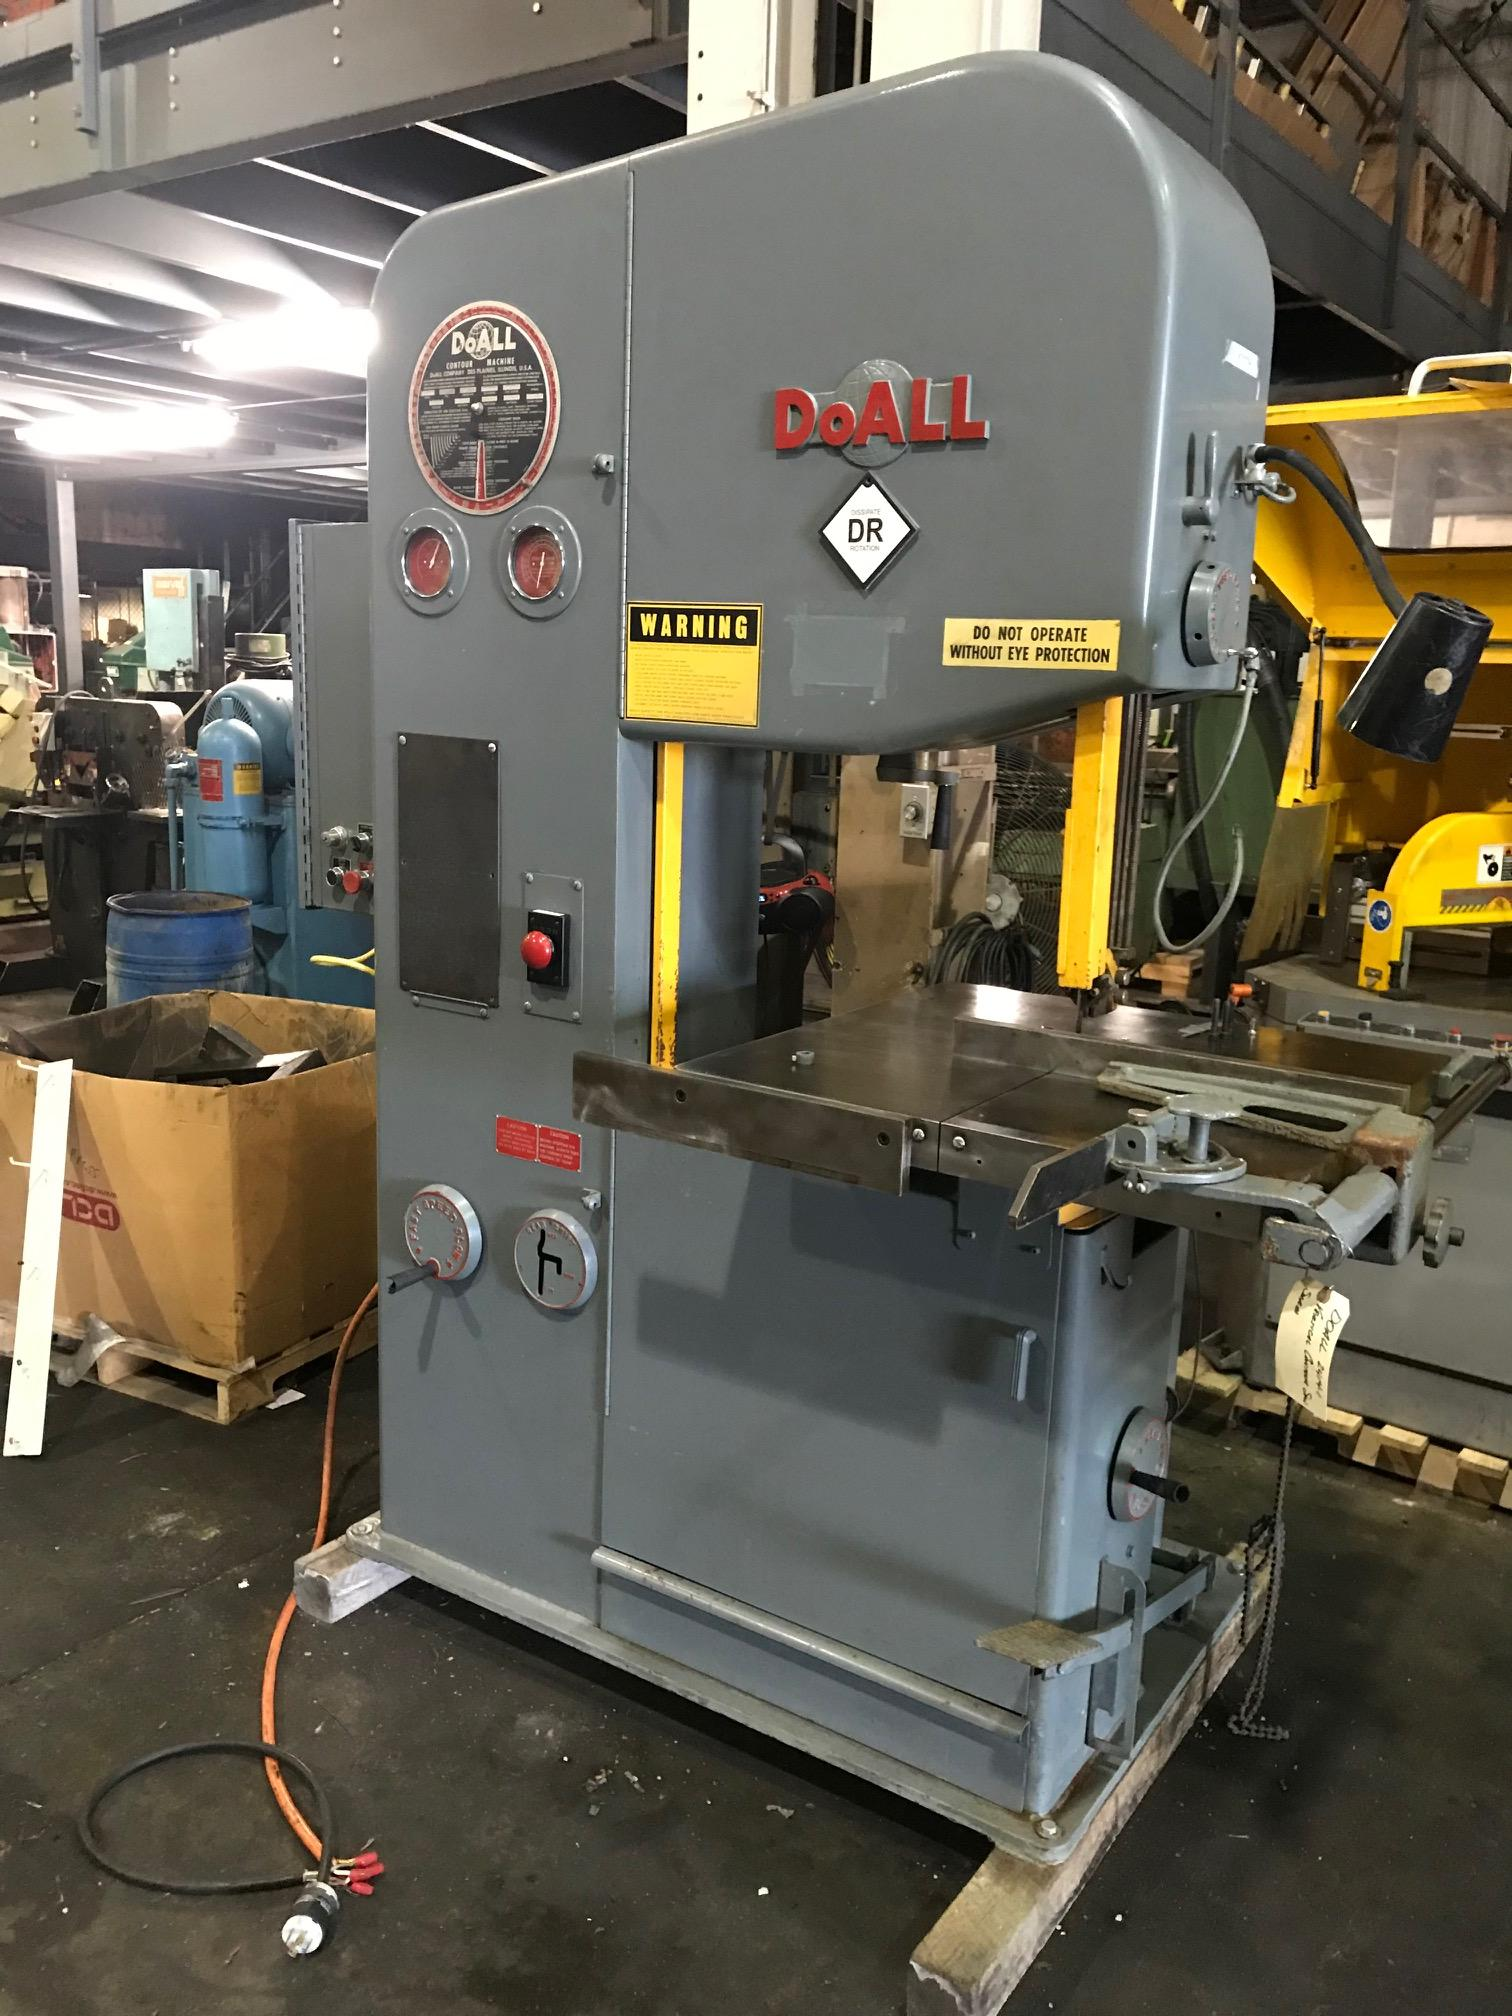 DoAll Vertical Contour Saw, Model 2614-1, Stock No. 10536, Year 1979